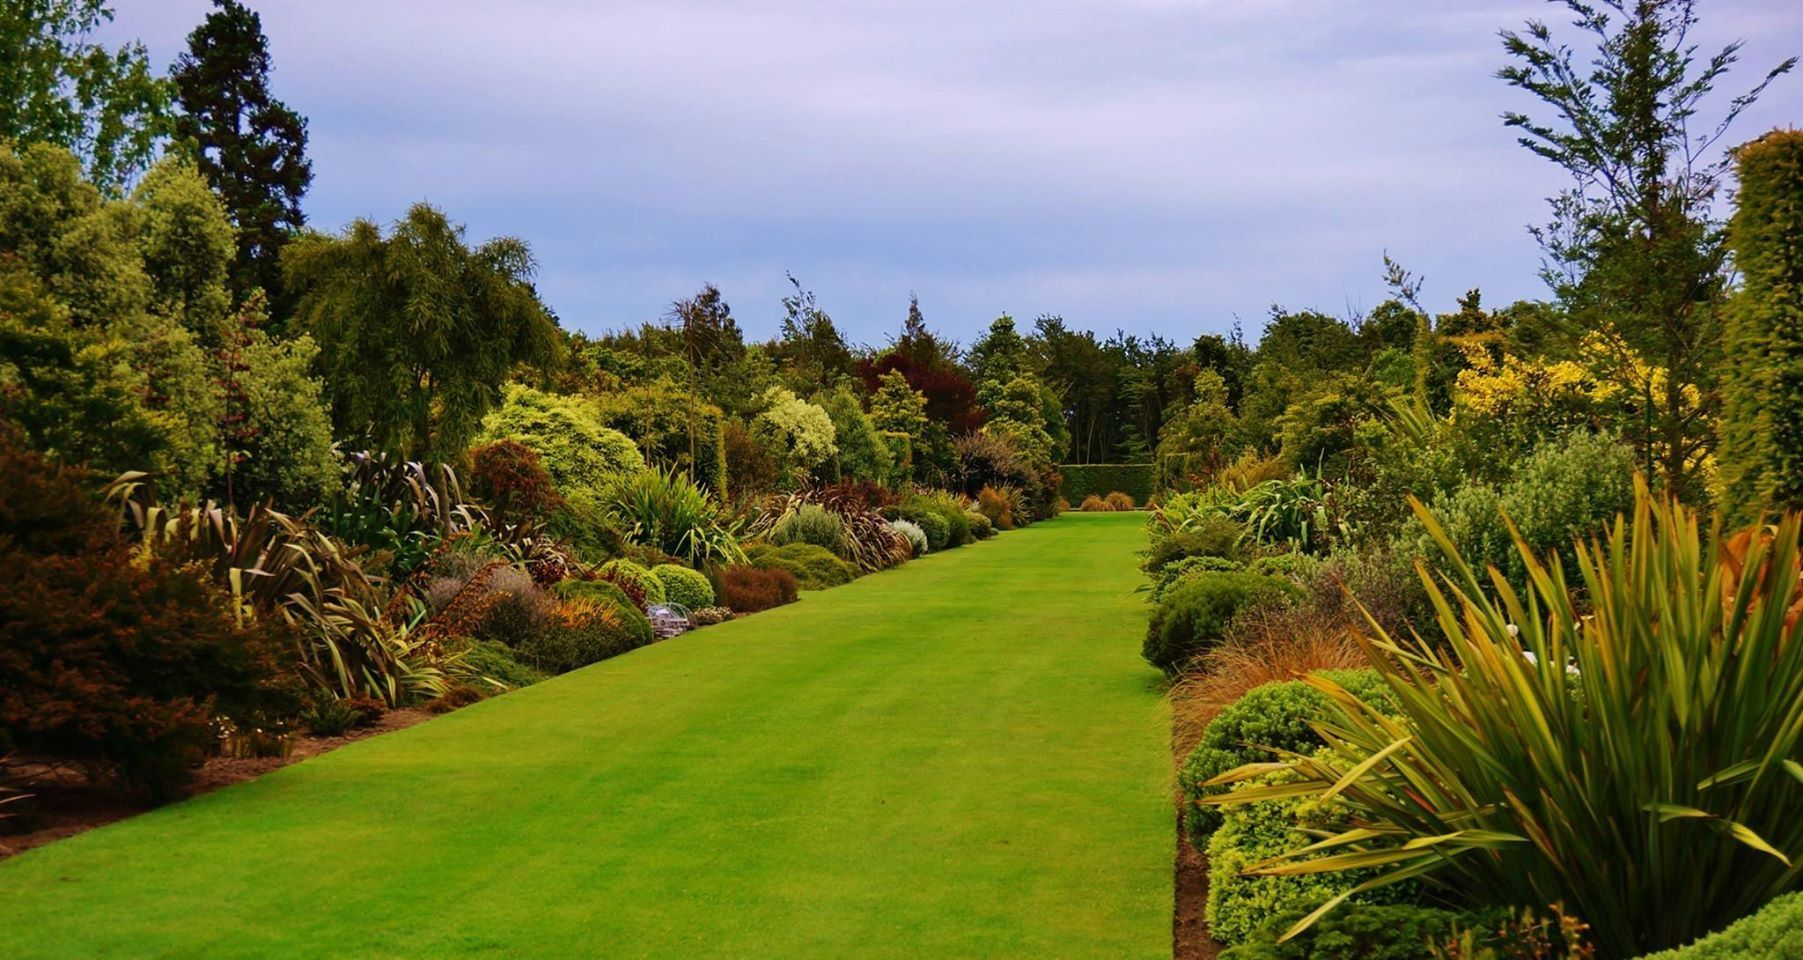 100m Long Double Borders Of Nz Native Plants Broadfield Nz Landscape Garden Canterbury New Zealand In 2020 Garden Landscape Design Native Garden Landscape Design